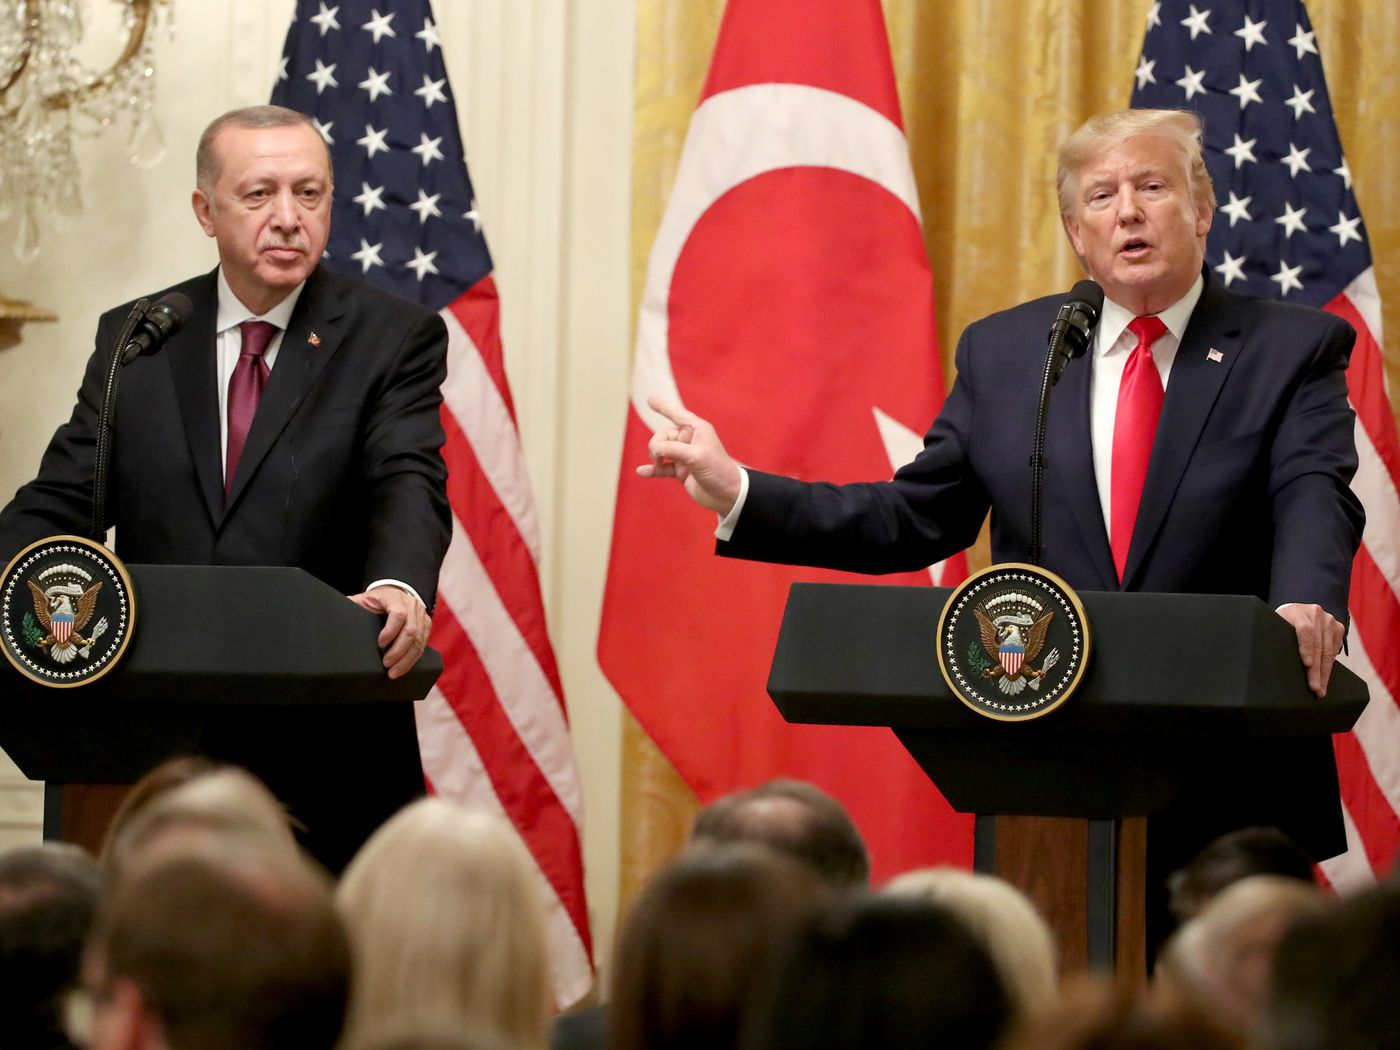 Trump Erdogan Meeting 2 Unsettling Moments From Their Press Conference Vox